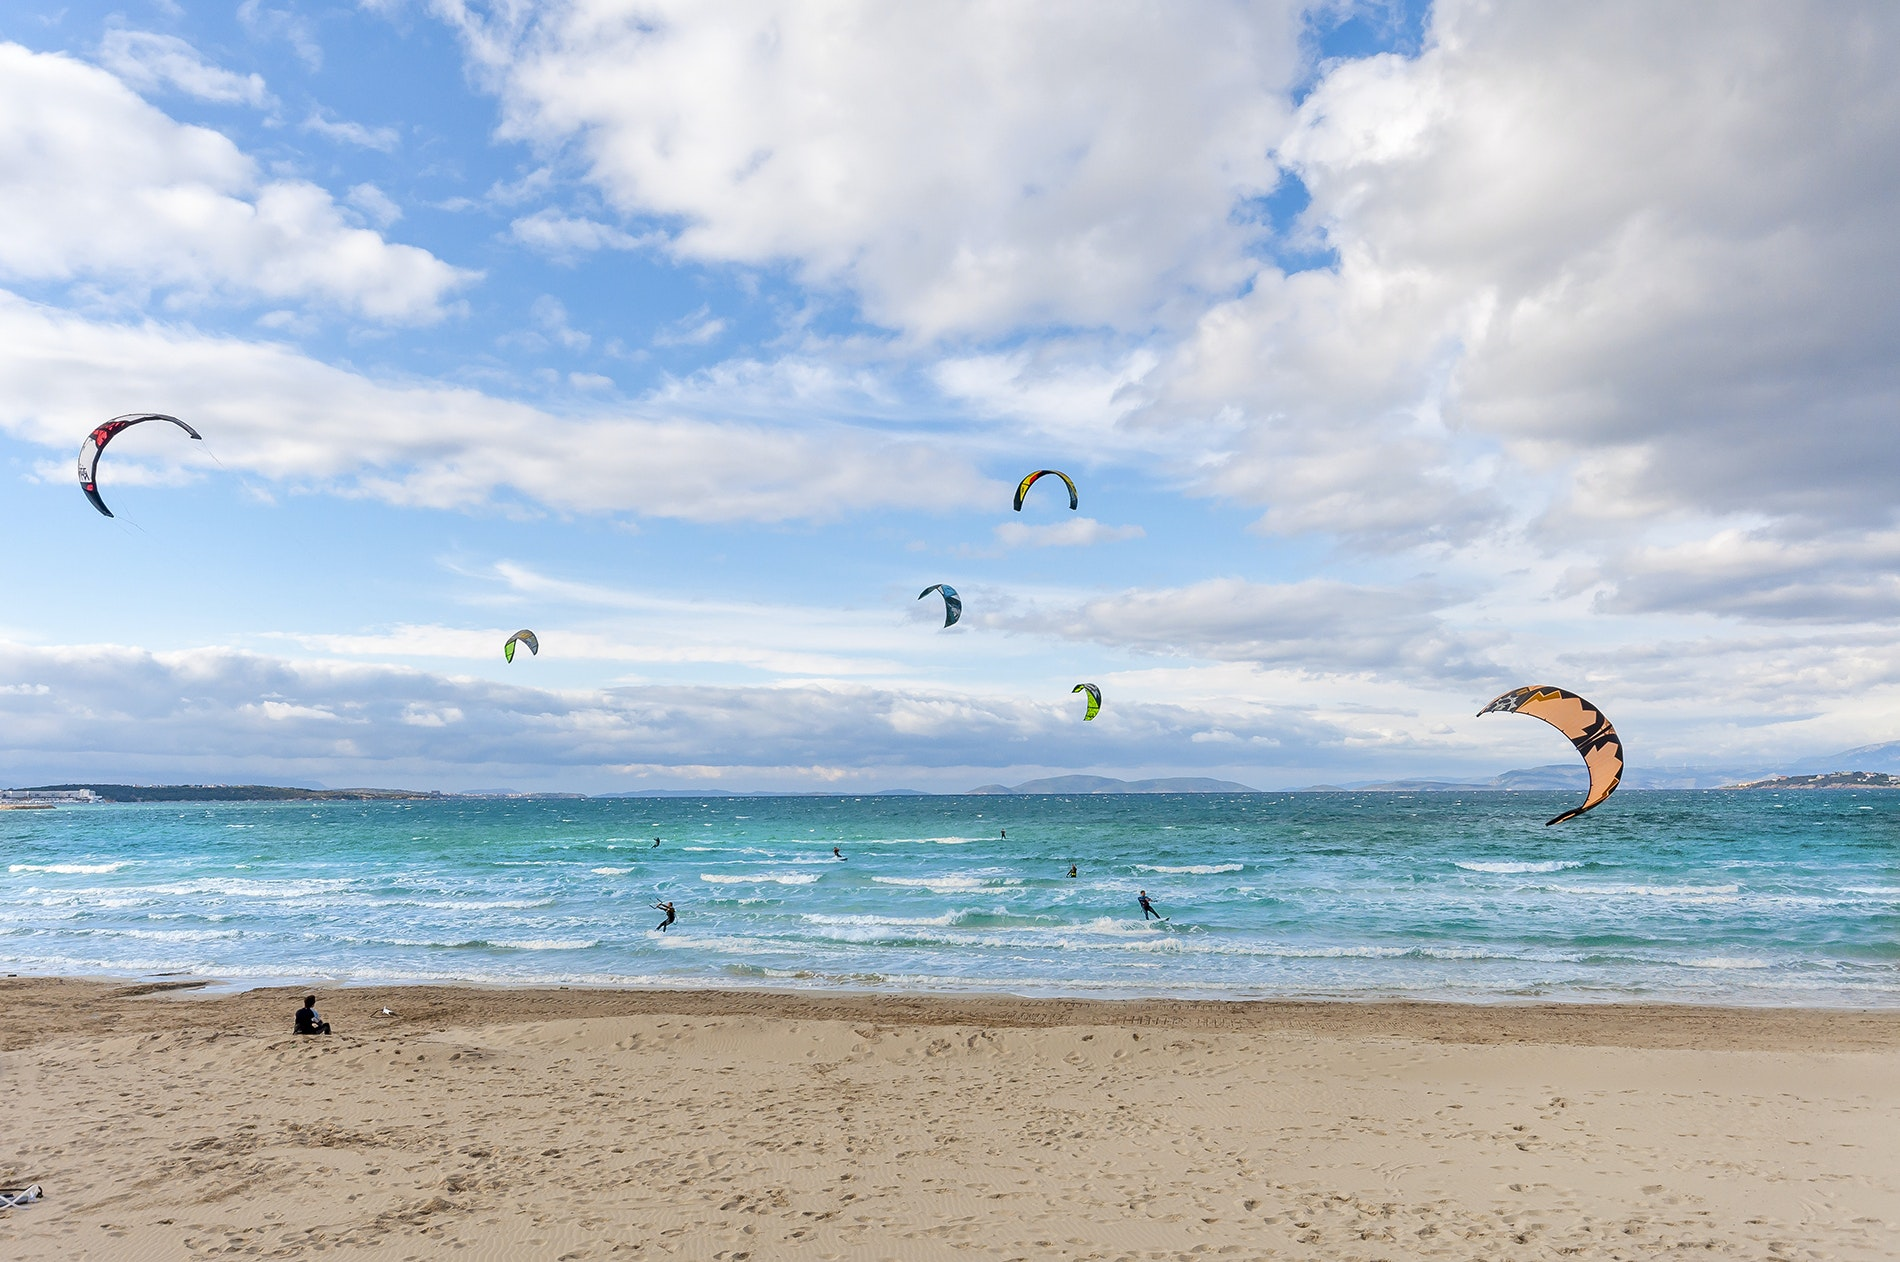 Turkey's mile-long Ilıca beach offers a less touristy alternative to busy Bodrum further south; it also hosts the world championships for windsurfing.